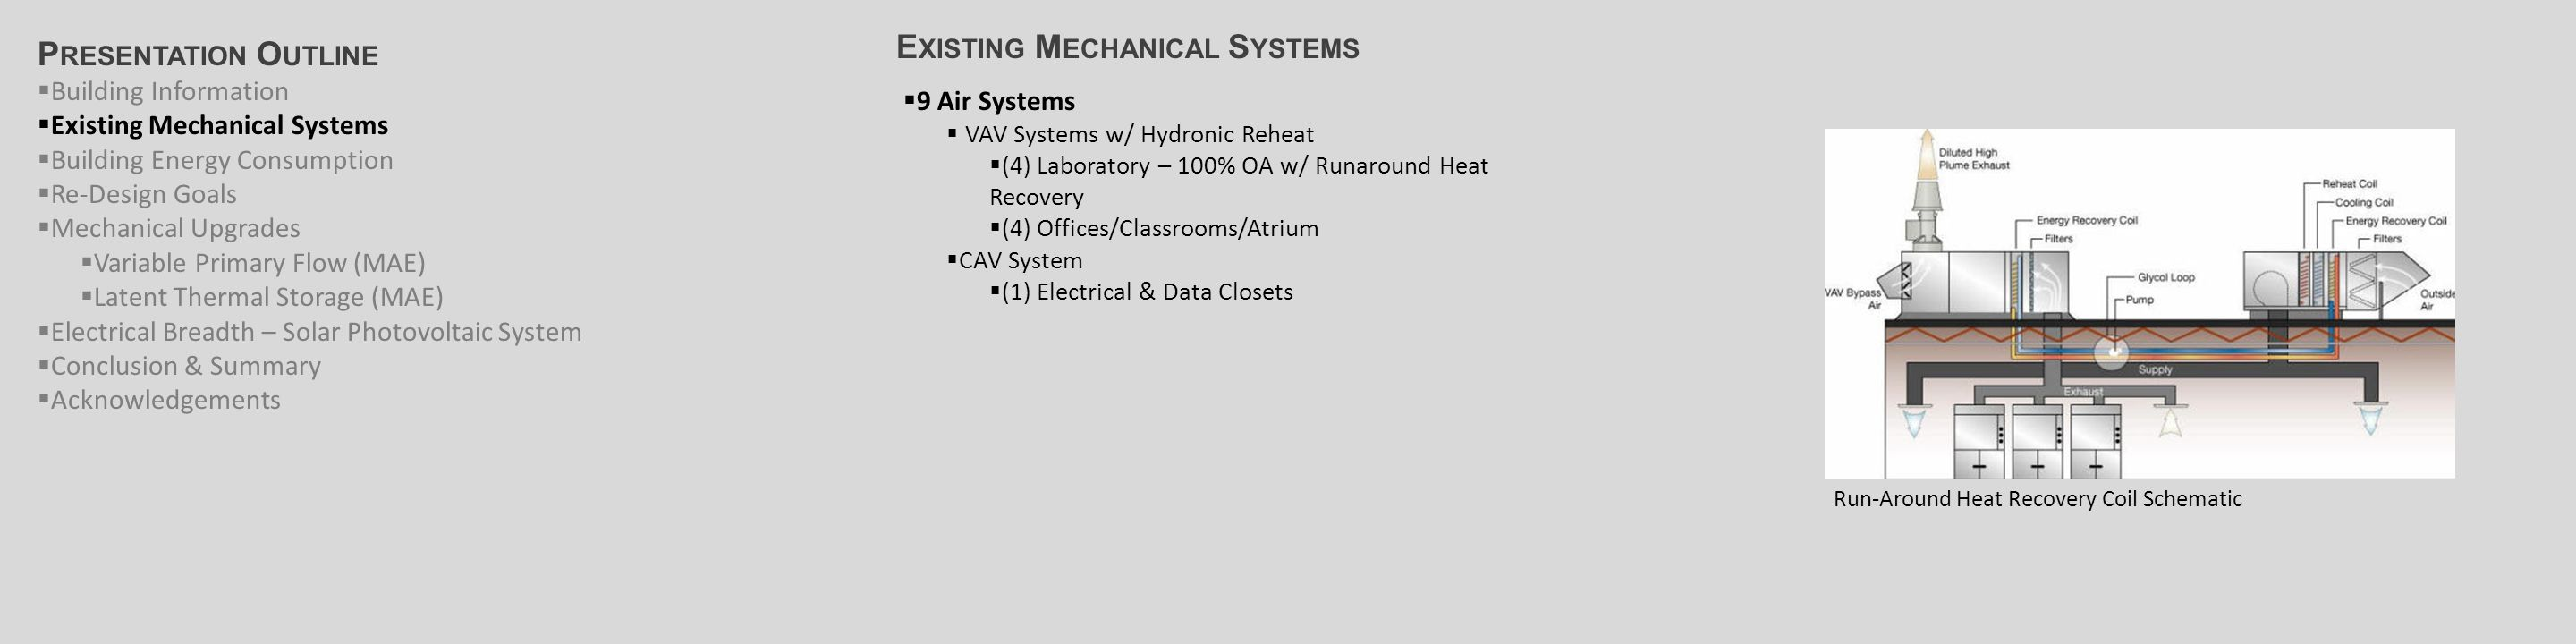 E XISTING M ECHANICAL S YSTEMS Primary/Secondary Chilled Water System P RESENTATION O UTLINE  Building Information  Existing Mechanical Systems  Building Energy Consumption  Re-Design Goals  Mechanical Upgrades  Variable Primary Flow (MAE)  Latent Thermal Storage (MAE)  Electrical Breadth – Solar Photovoltaic System  Conclusion & Summary  Acknowledgements  9 Air Systems  VAV Systems w/ Hydronic Reheat  (4) Laboratory – 100% OA w/ Runaround Heat Recovery  (4) Offices/Classrooms/Atrium  CAV System w/ Hydronic Reheat  (1) Electrical & Data Closets  Chilled Water System  (2) 620-ton Centrifugal Water-Cooled Chillers  (2) 620-ton Direct, Induced Draft Cooling Towers  Primary/Secondary Pumping System